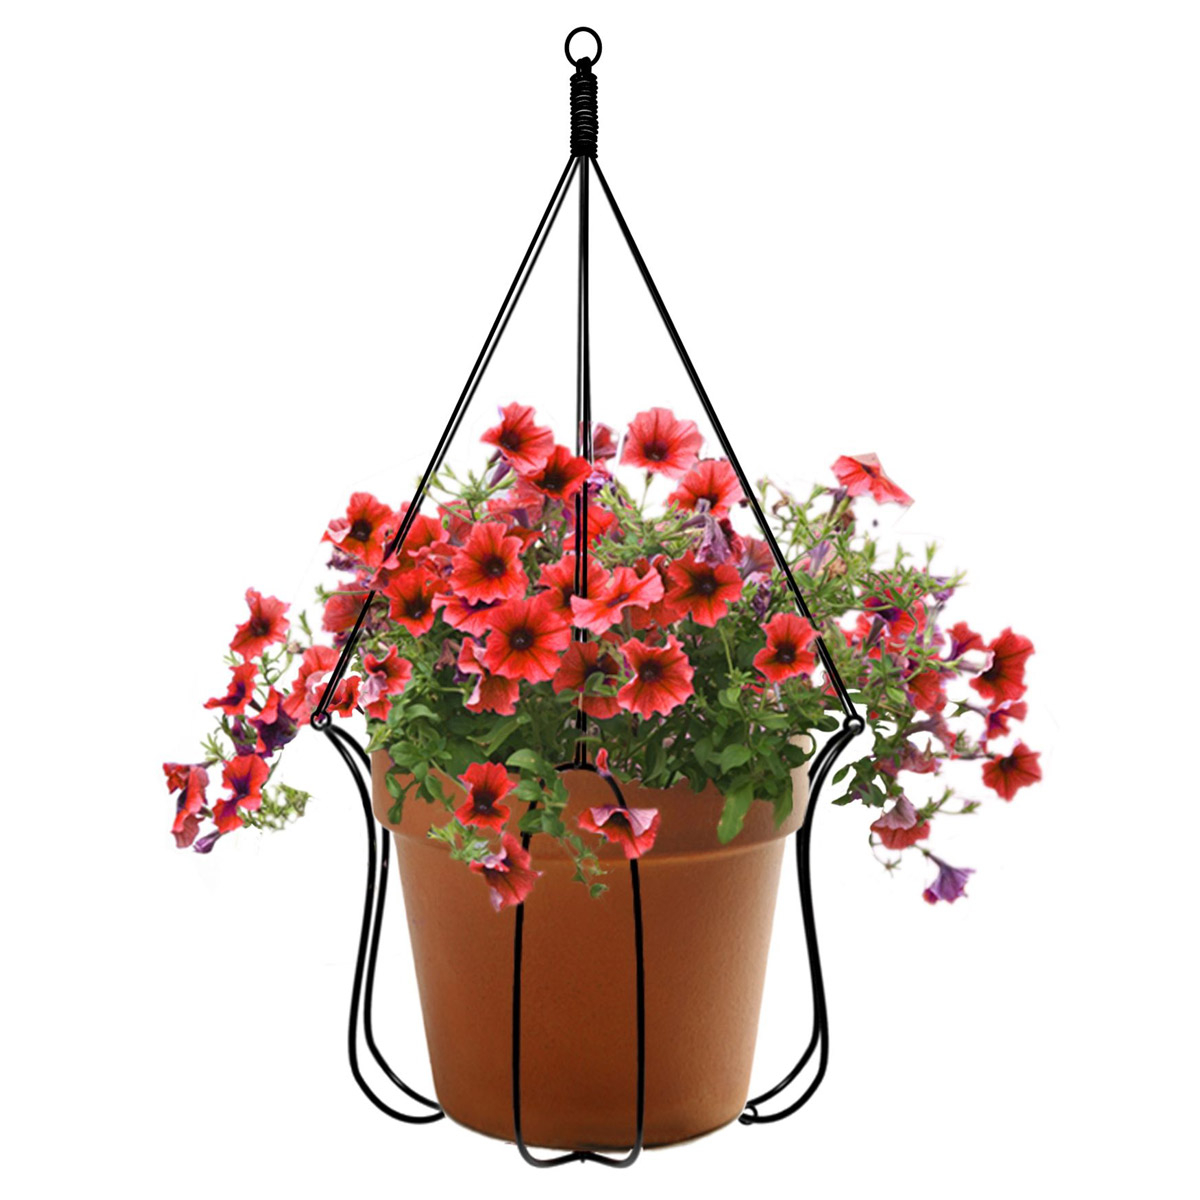 Adjustable Plant Hanger - Turns Almost Any Pot Into a Hanging Planter ...